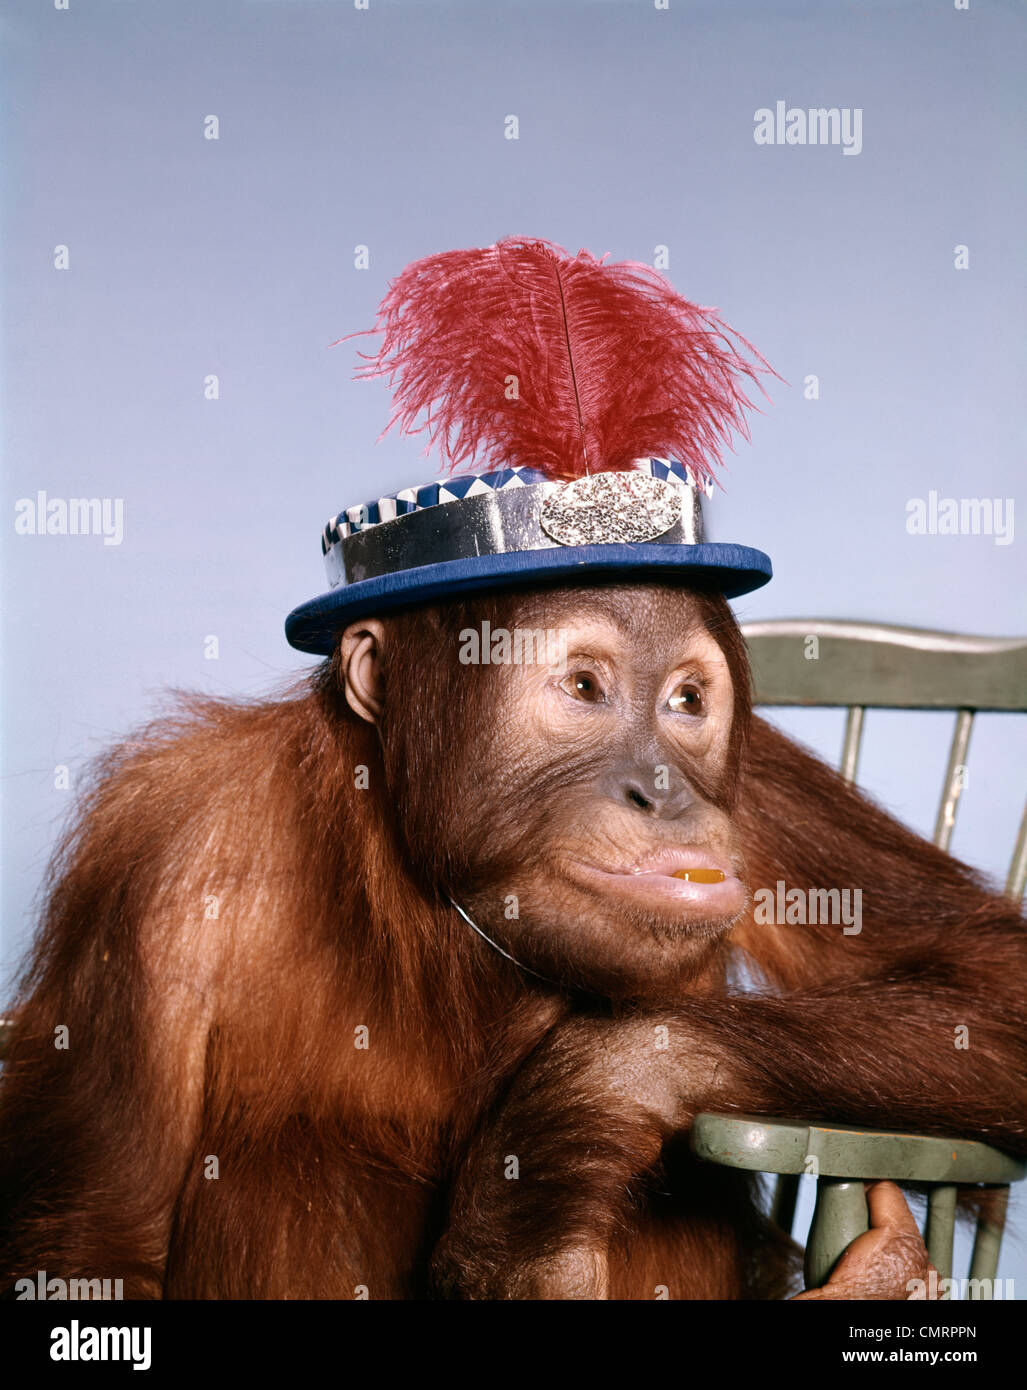 1960s FUNNY ORANGUTAN SITTING IN CHAIR WEARING HAT WITH GLITTER AND A FEATHER - Stock Image